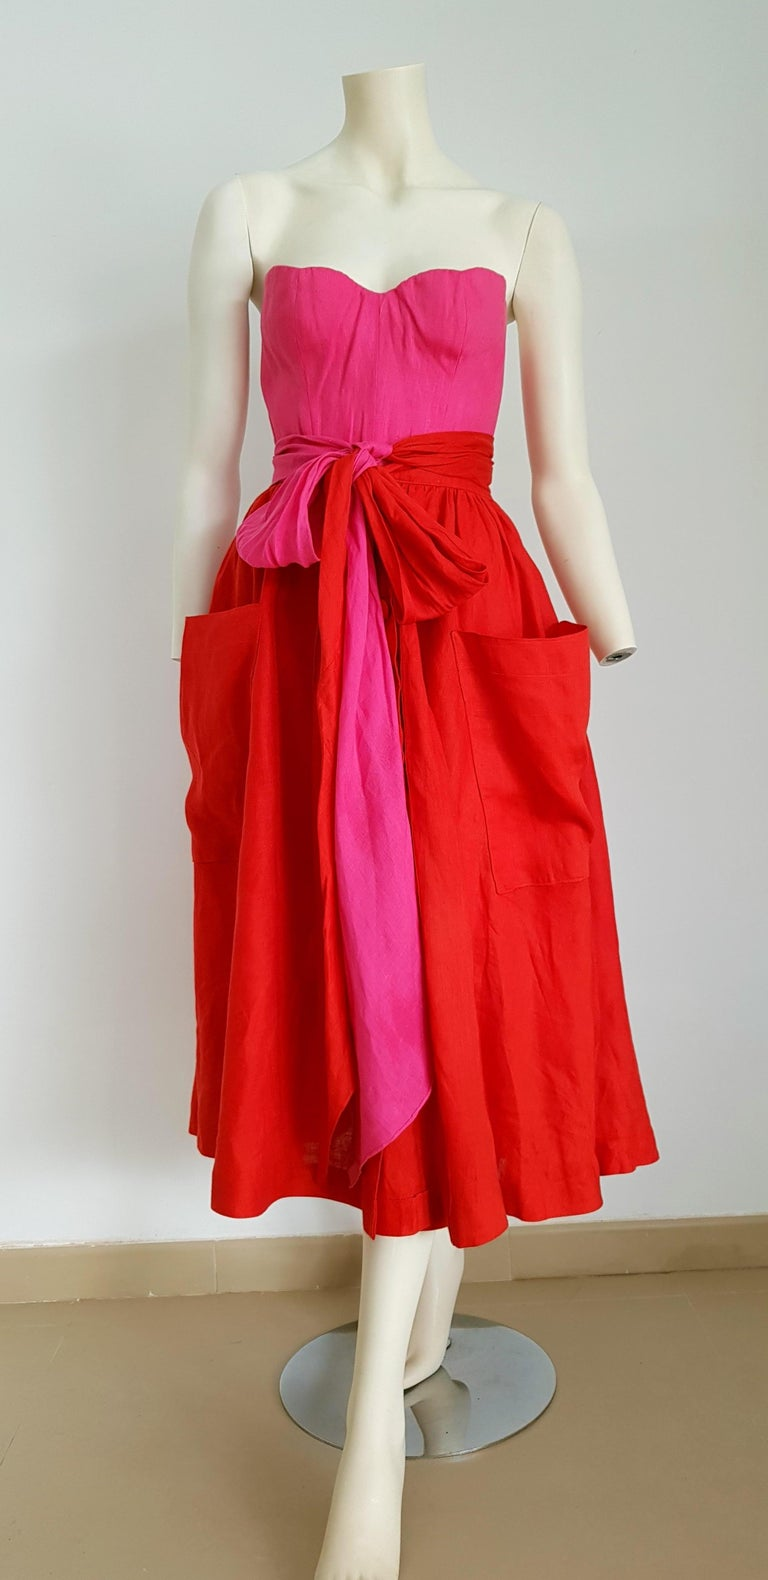 Claude MONTANA Haute Couture, corset knotted bands at the waist, red and fuchsia dress - Unworn  SIZE: equivalent to about Small / Medium, please review approx measurements as follows in cm.  TOP: lenght 35, chest underarm to underarm 50, bust